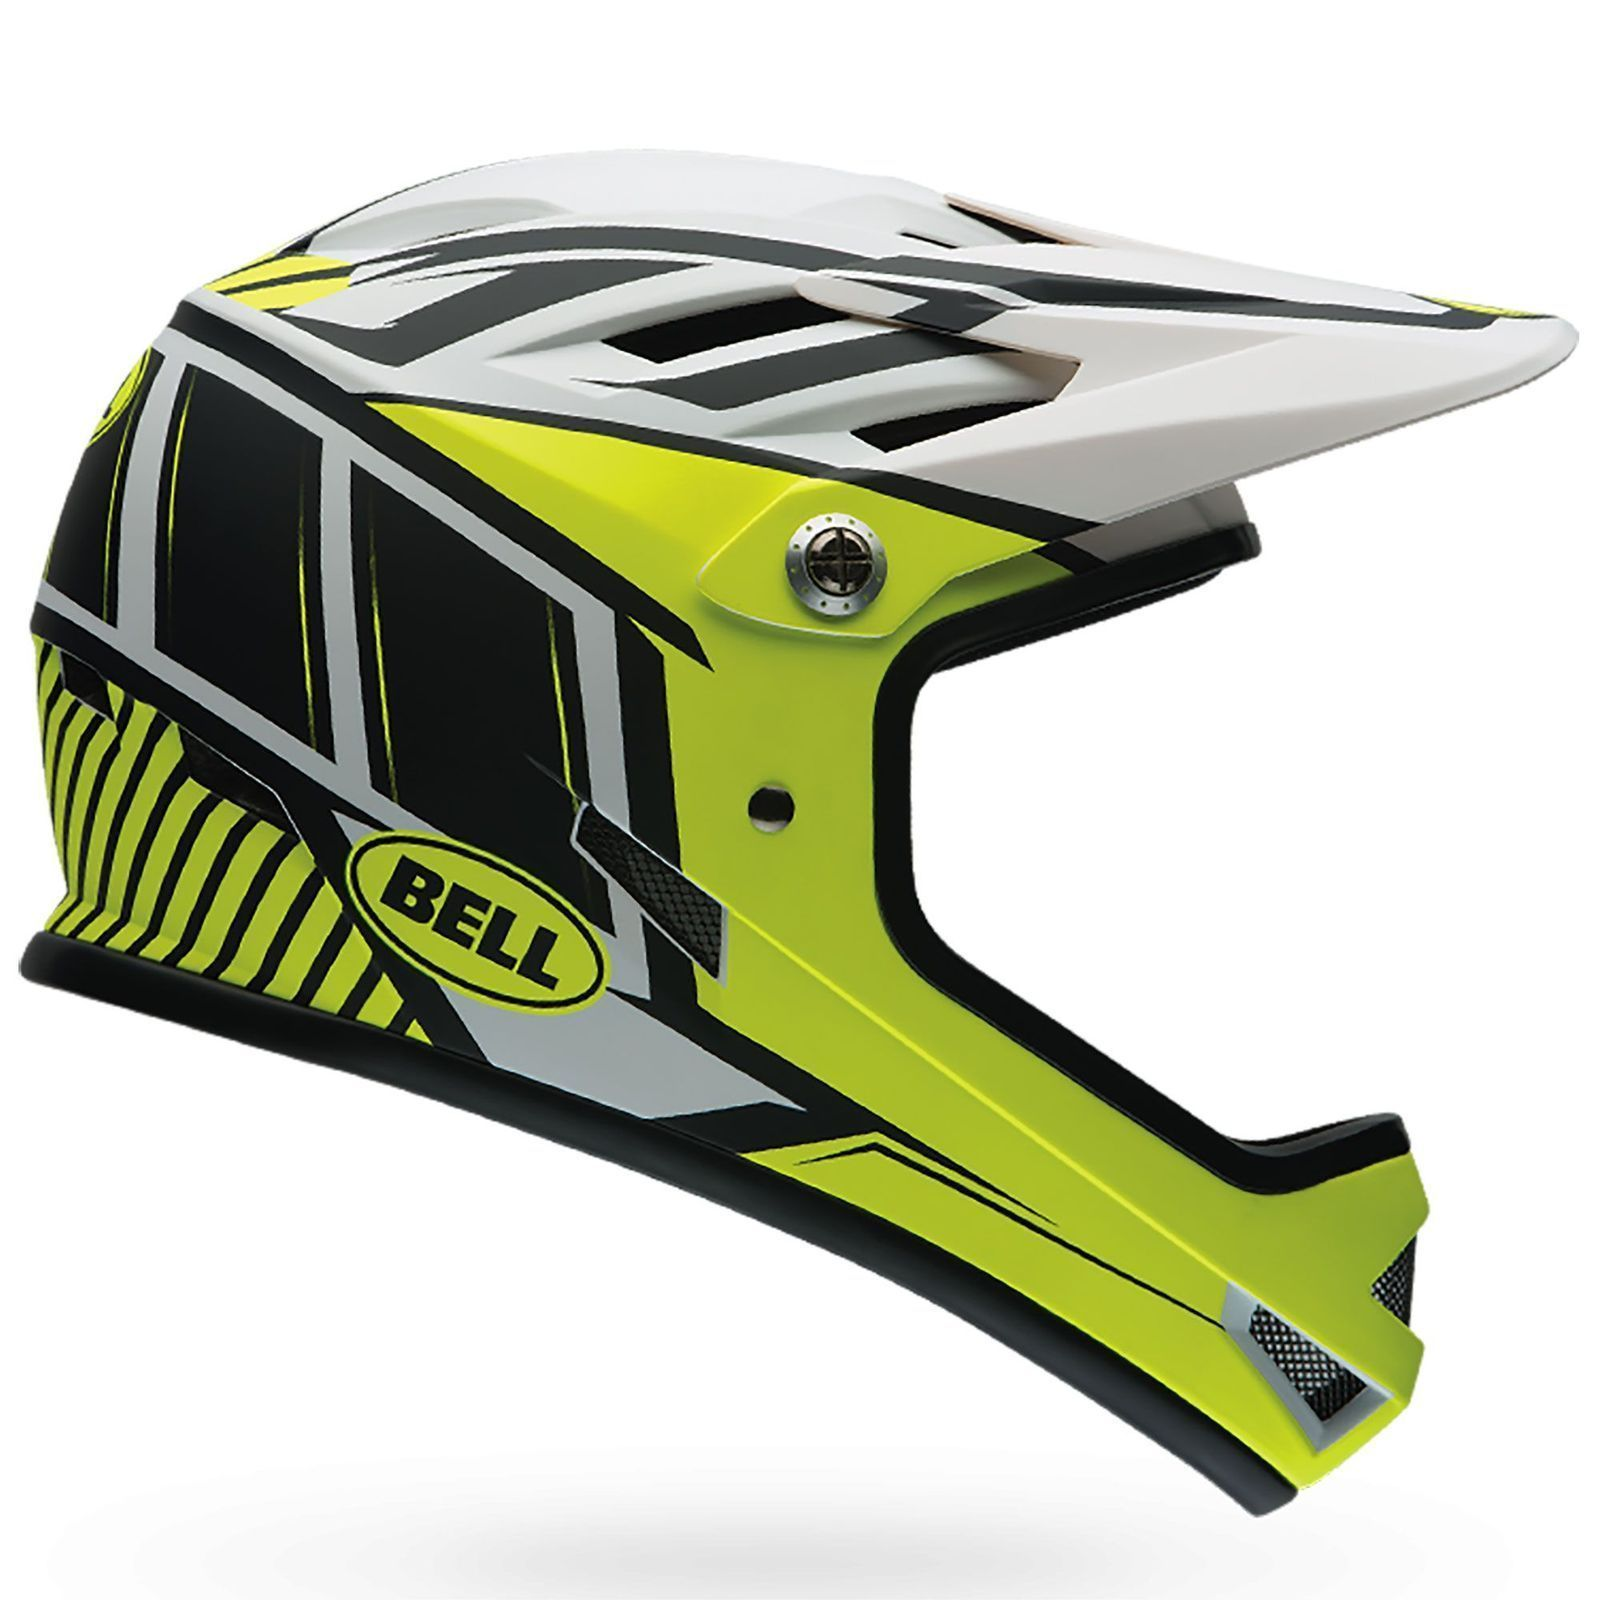 ce4a56573a6 Bell Sanction Full Face Bmx Enduro Bike Cycling Crash Helmet  Colour   Retina Sear   Size  M